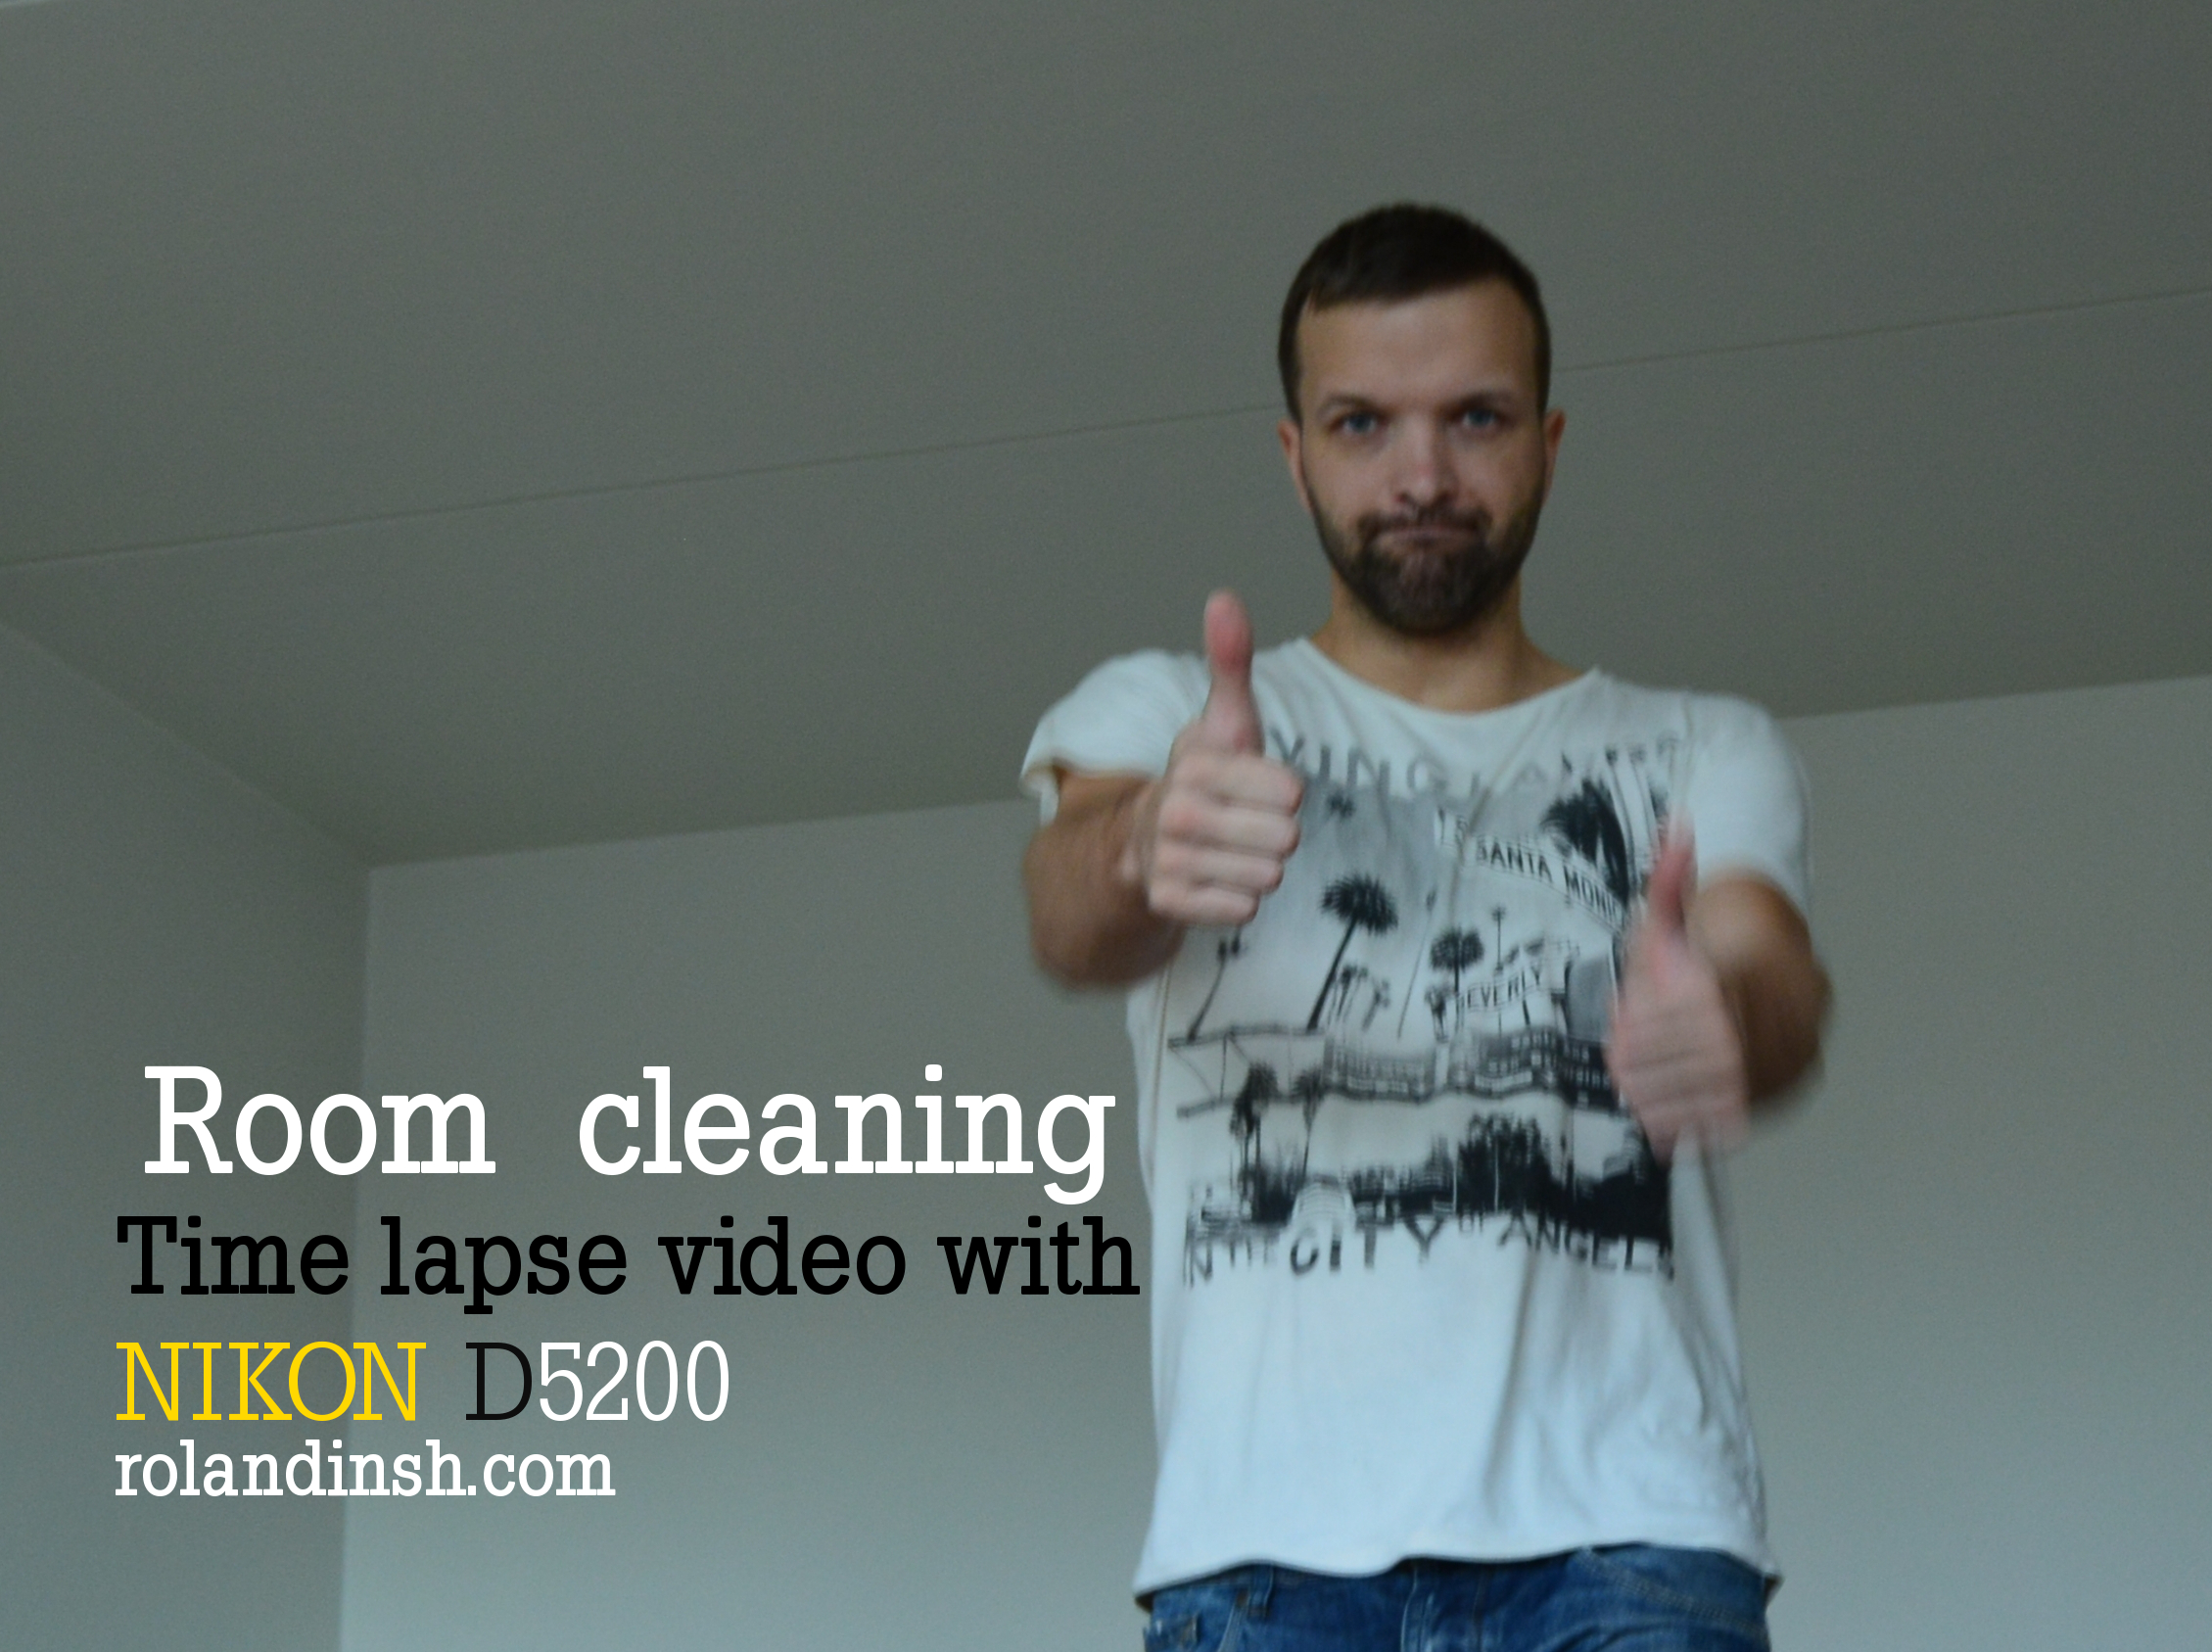 Cleaning room. Time lapse video